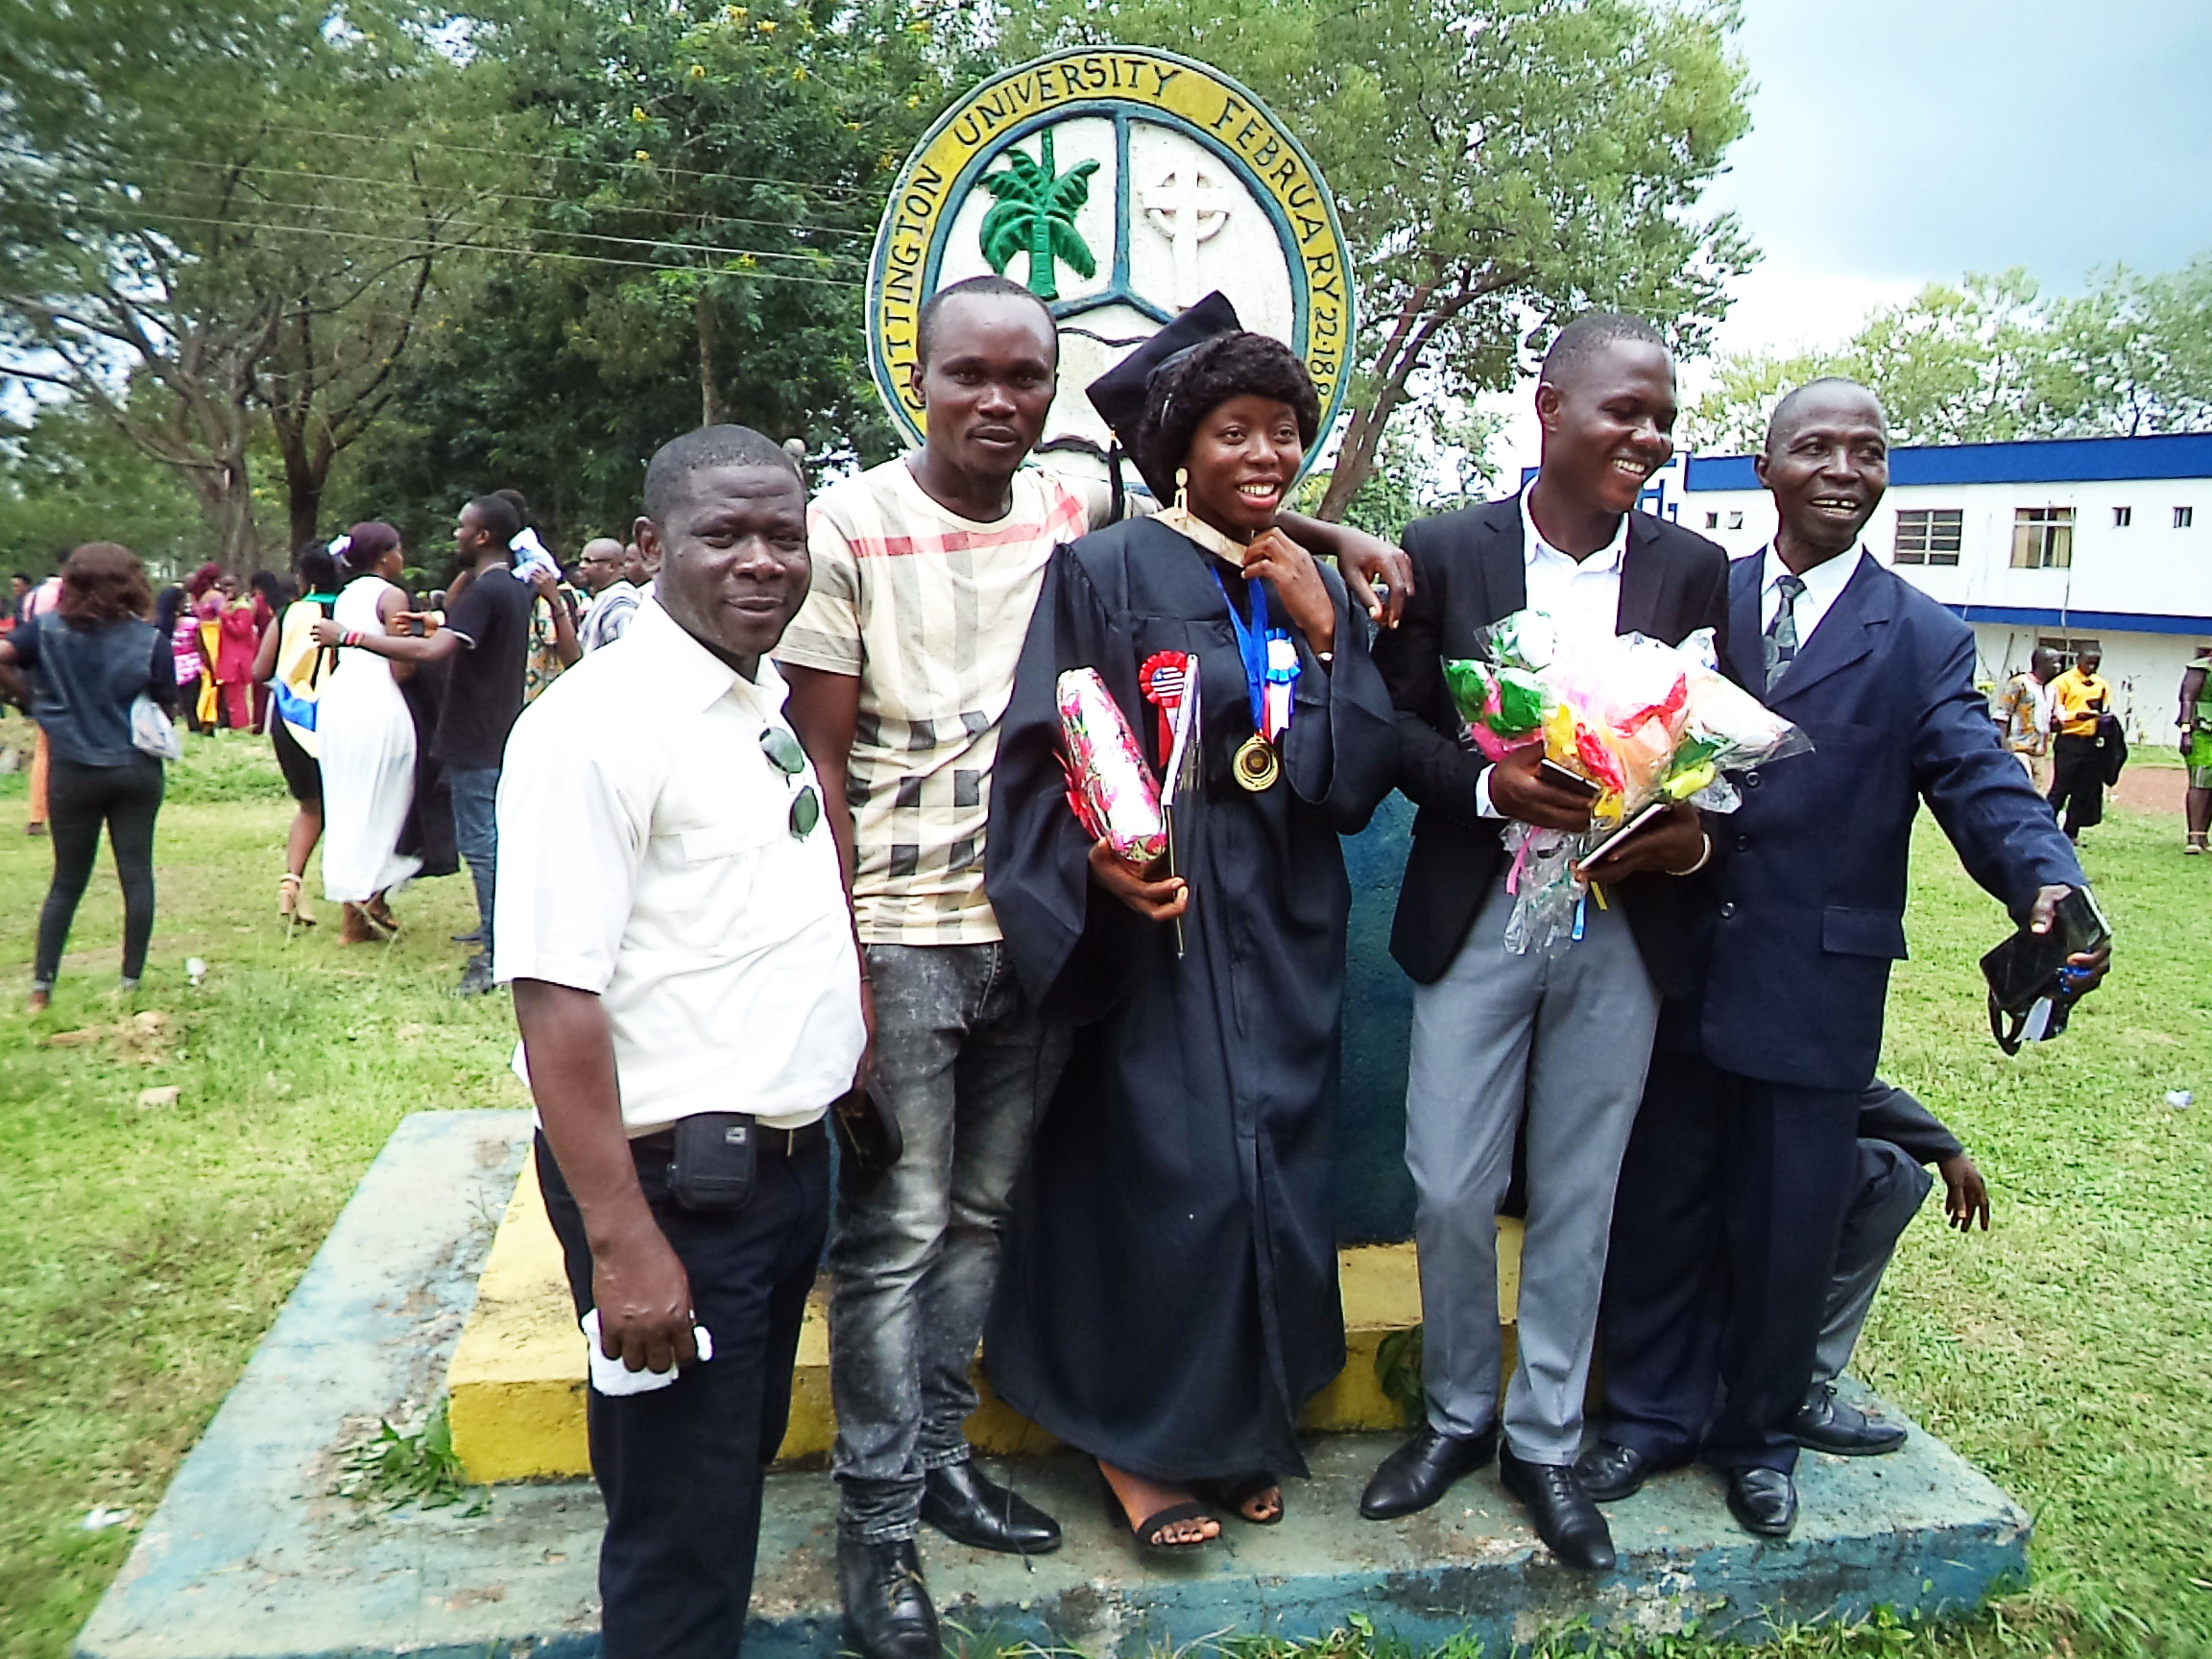 Daniel Keamue ( on the far left) represents Provision of Hope.  We thank him for always making sure that school fees were paid on time and for taking all these wonderful photos.